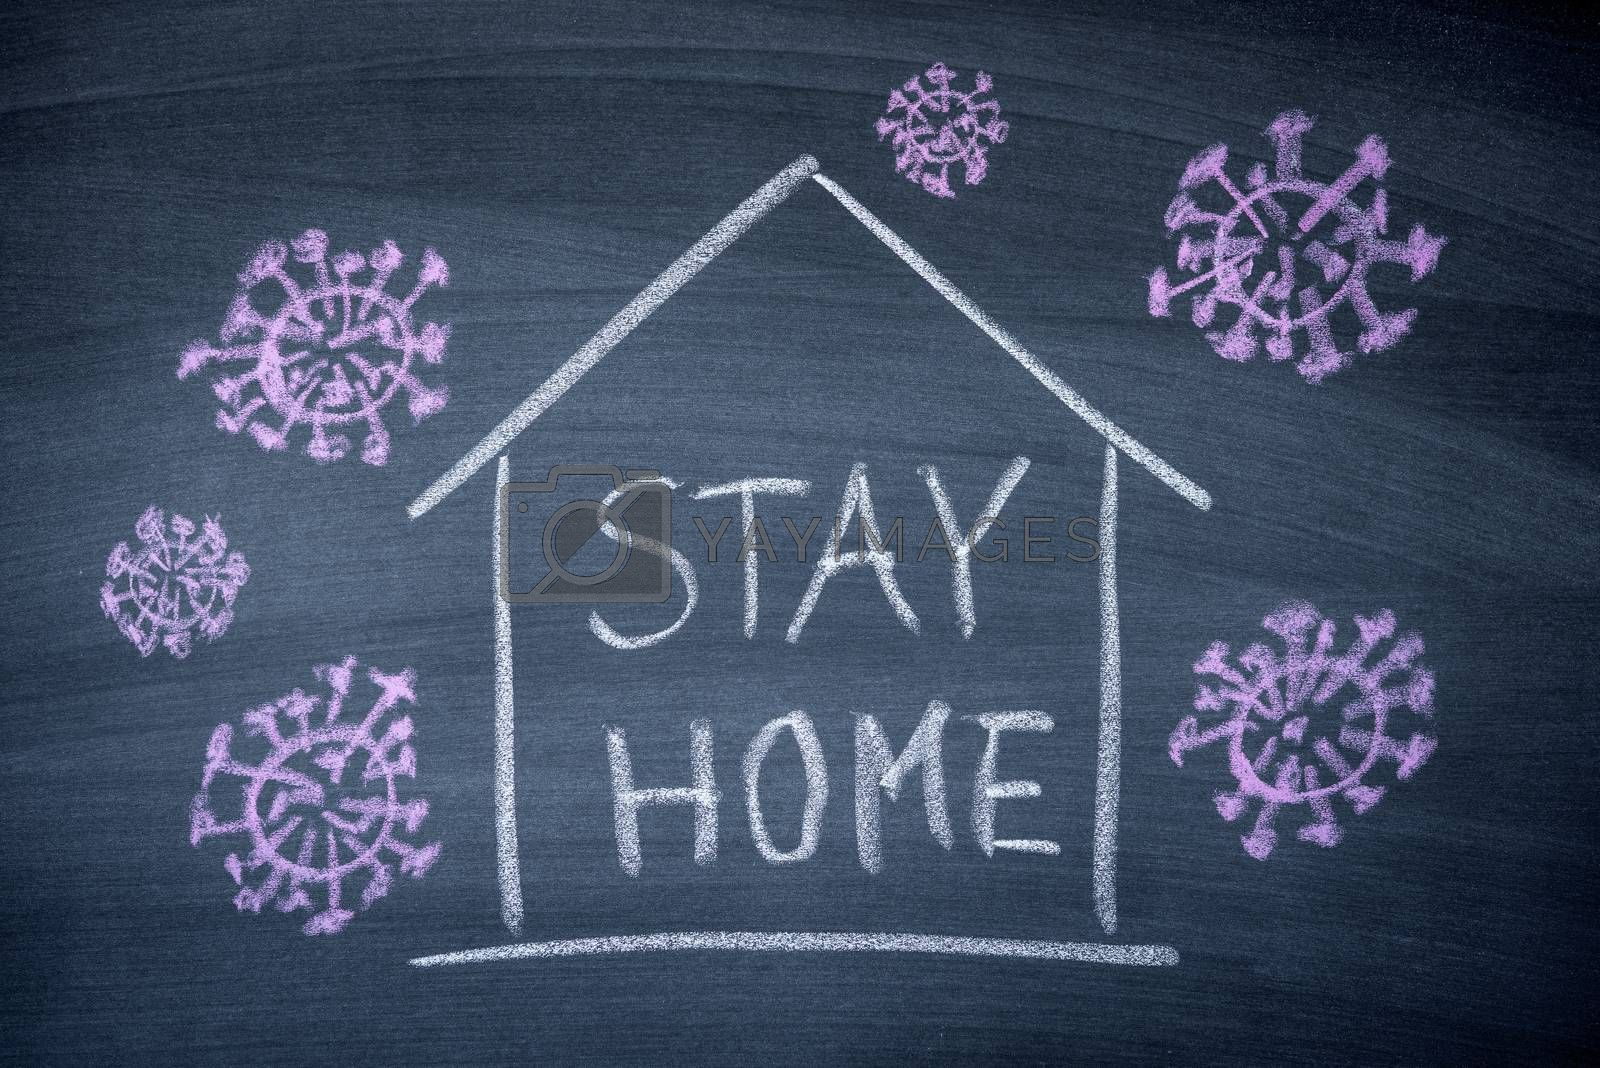 Stay at Home surrounded by Corona virus sign write on black chalkboard , prevent COVID-19 corona virus  spreading